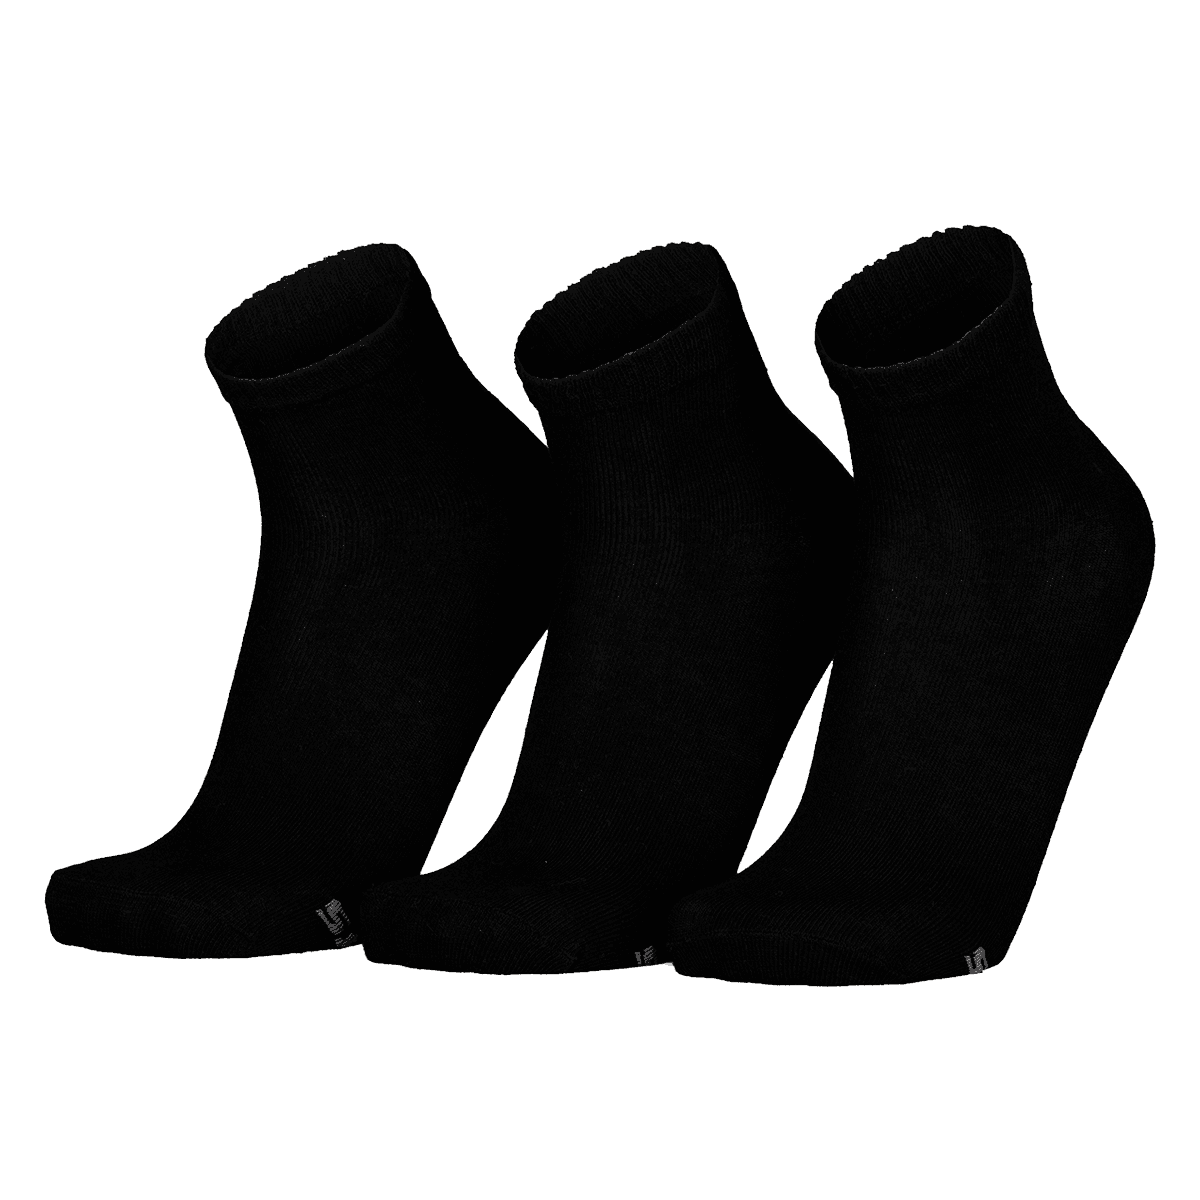 Skechers Socken Men Basic Quarter 24 Paar